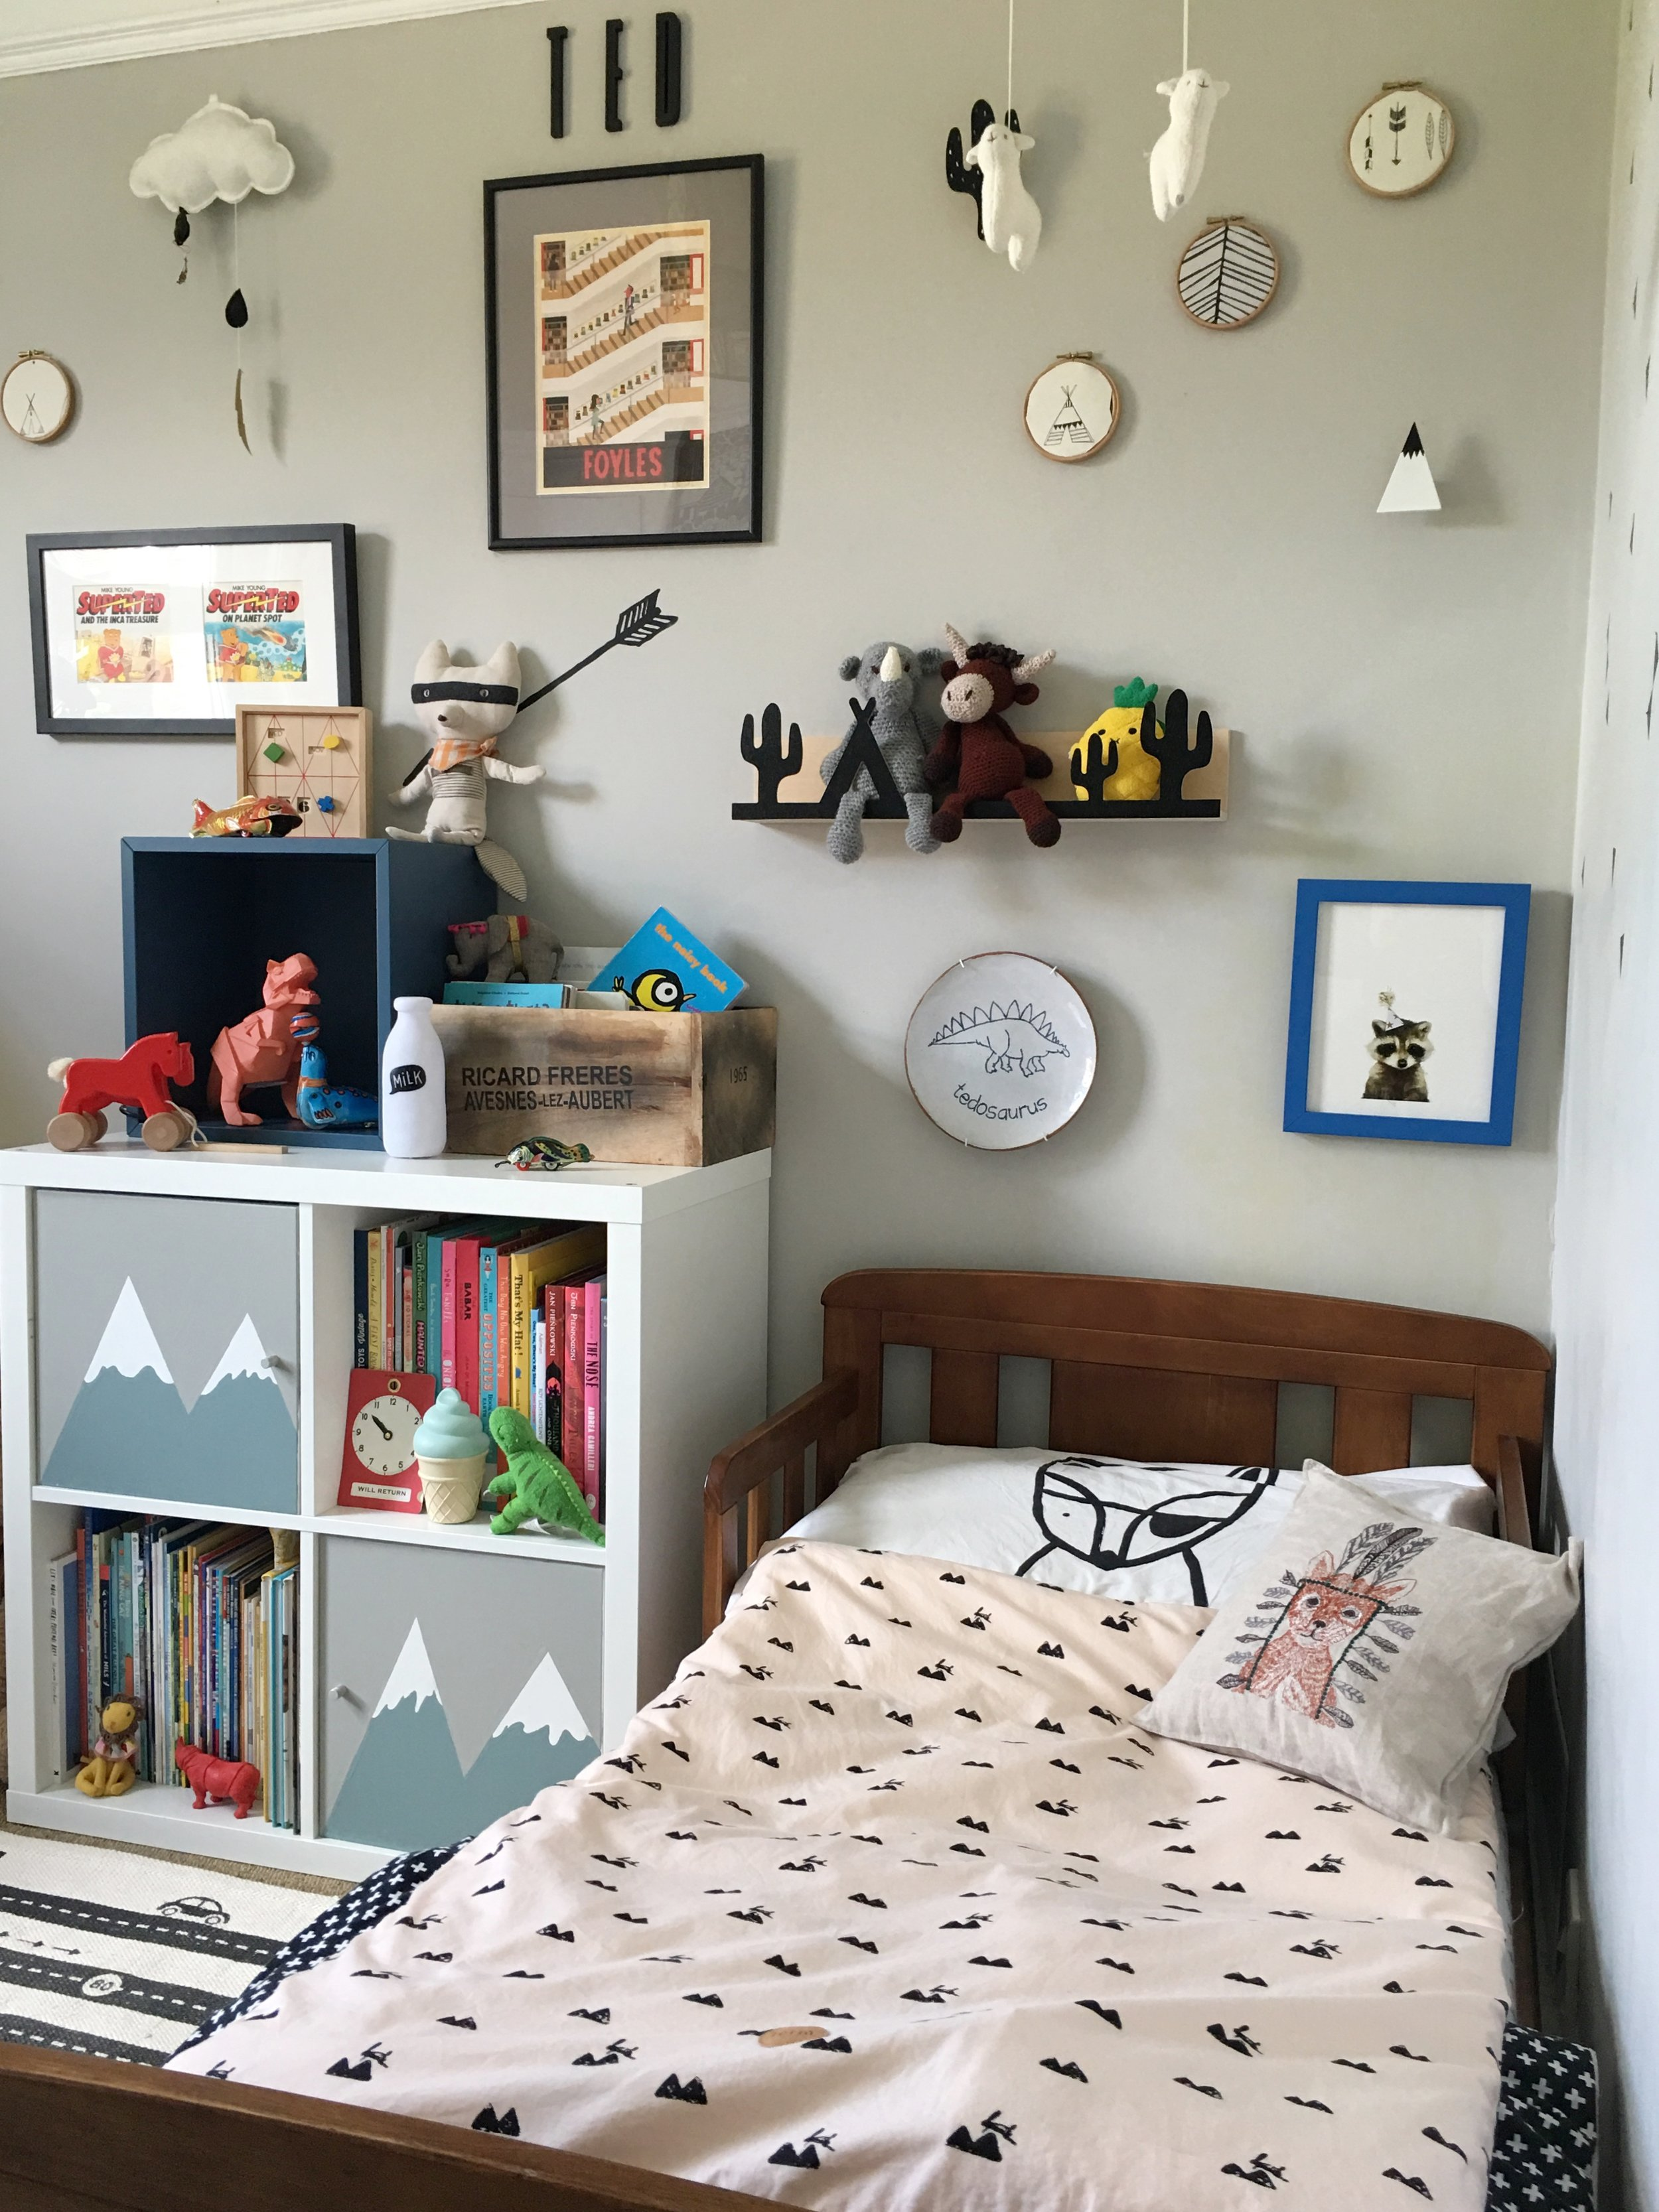 Farrow Ball cornforth white, interior ideas, childrens room decor with a  vintage and wooden toys, ikea kallax hack with hand painted mountains ferm living bedding copy.jpg